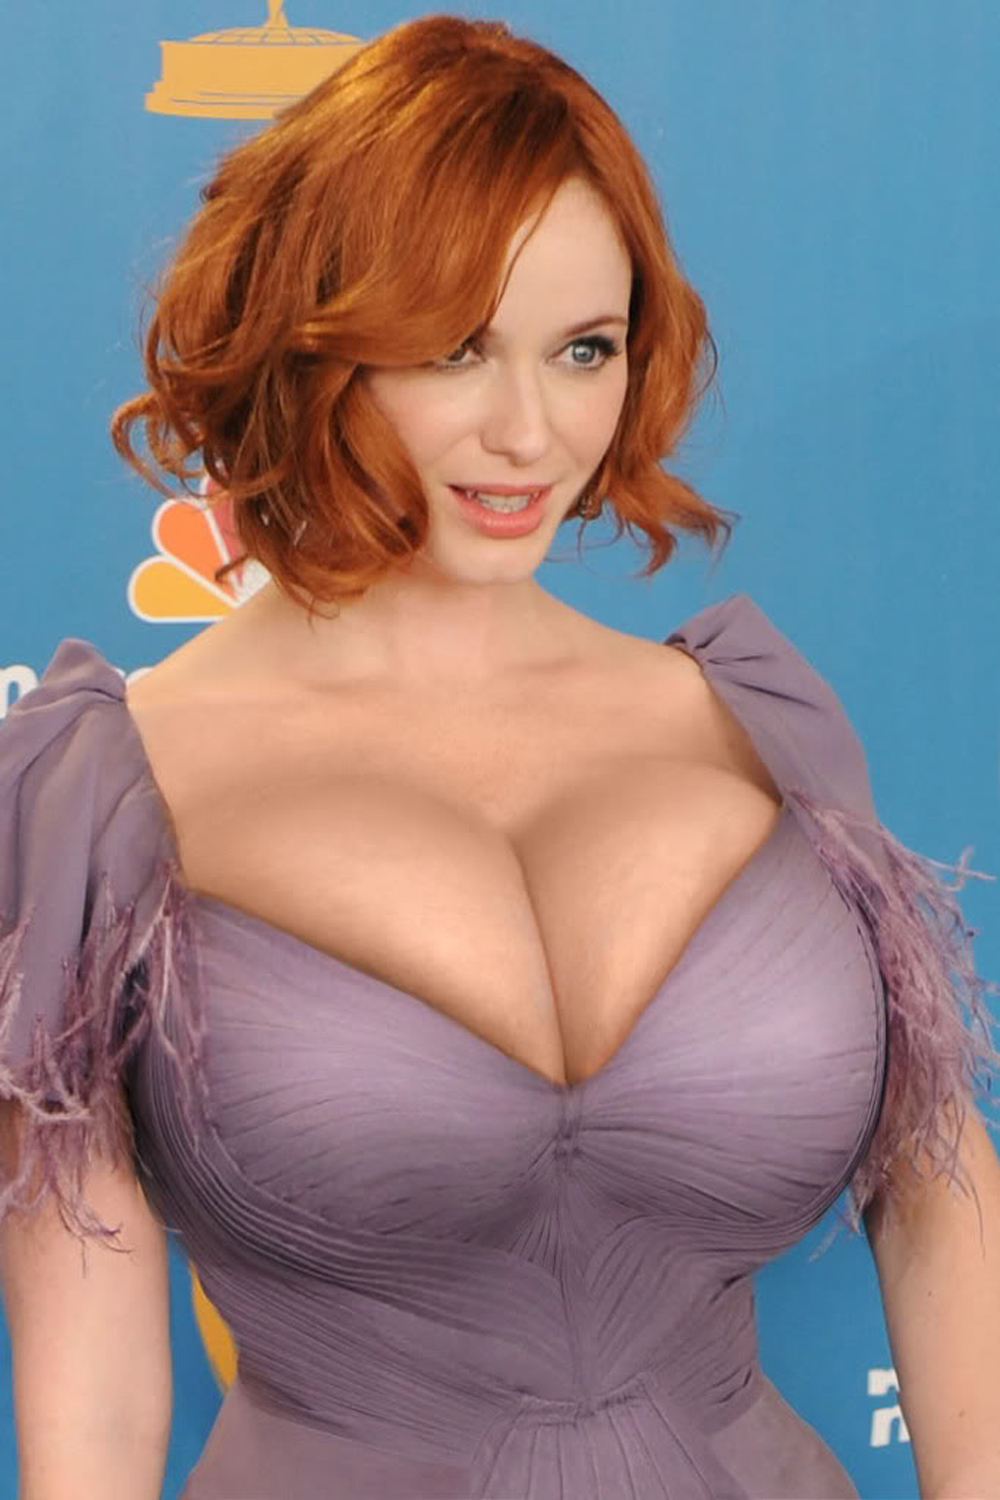 christina_hendricks_by_bobhhh-d3jr7e6